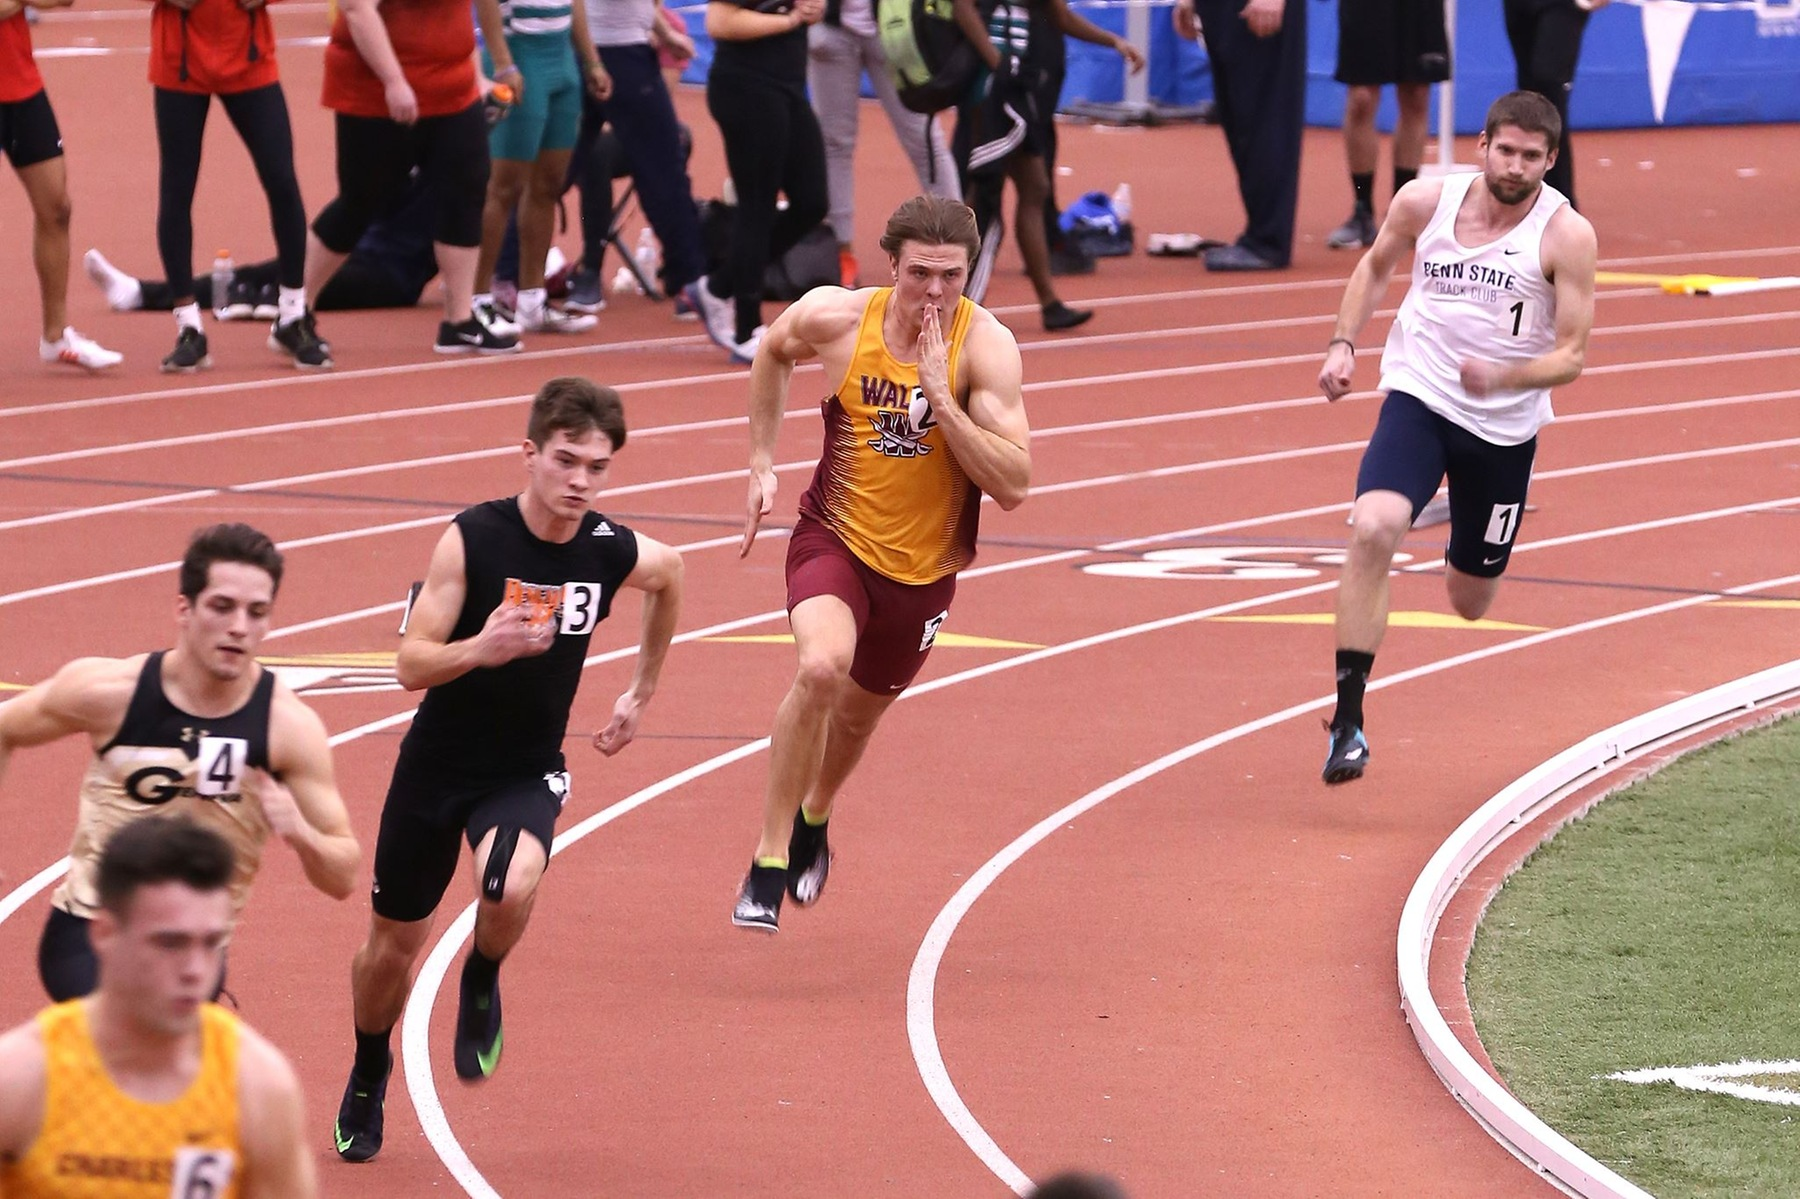 Men's Track & Field Off To Strong Start In Outdoor Season